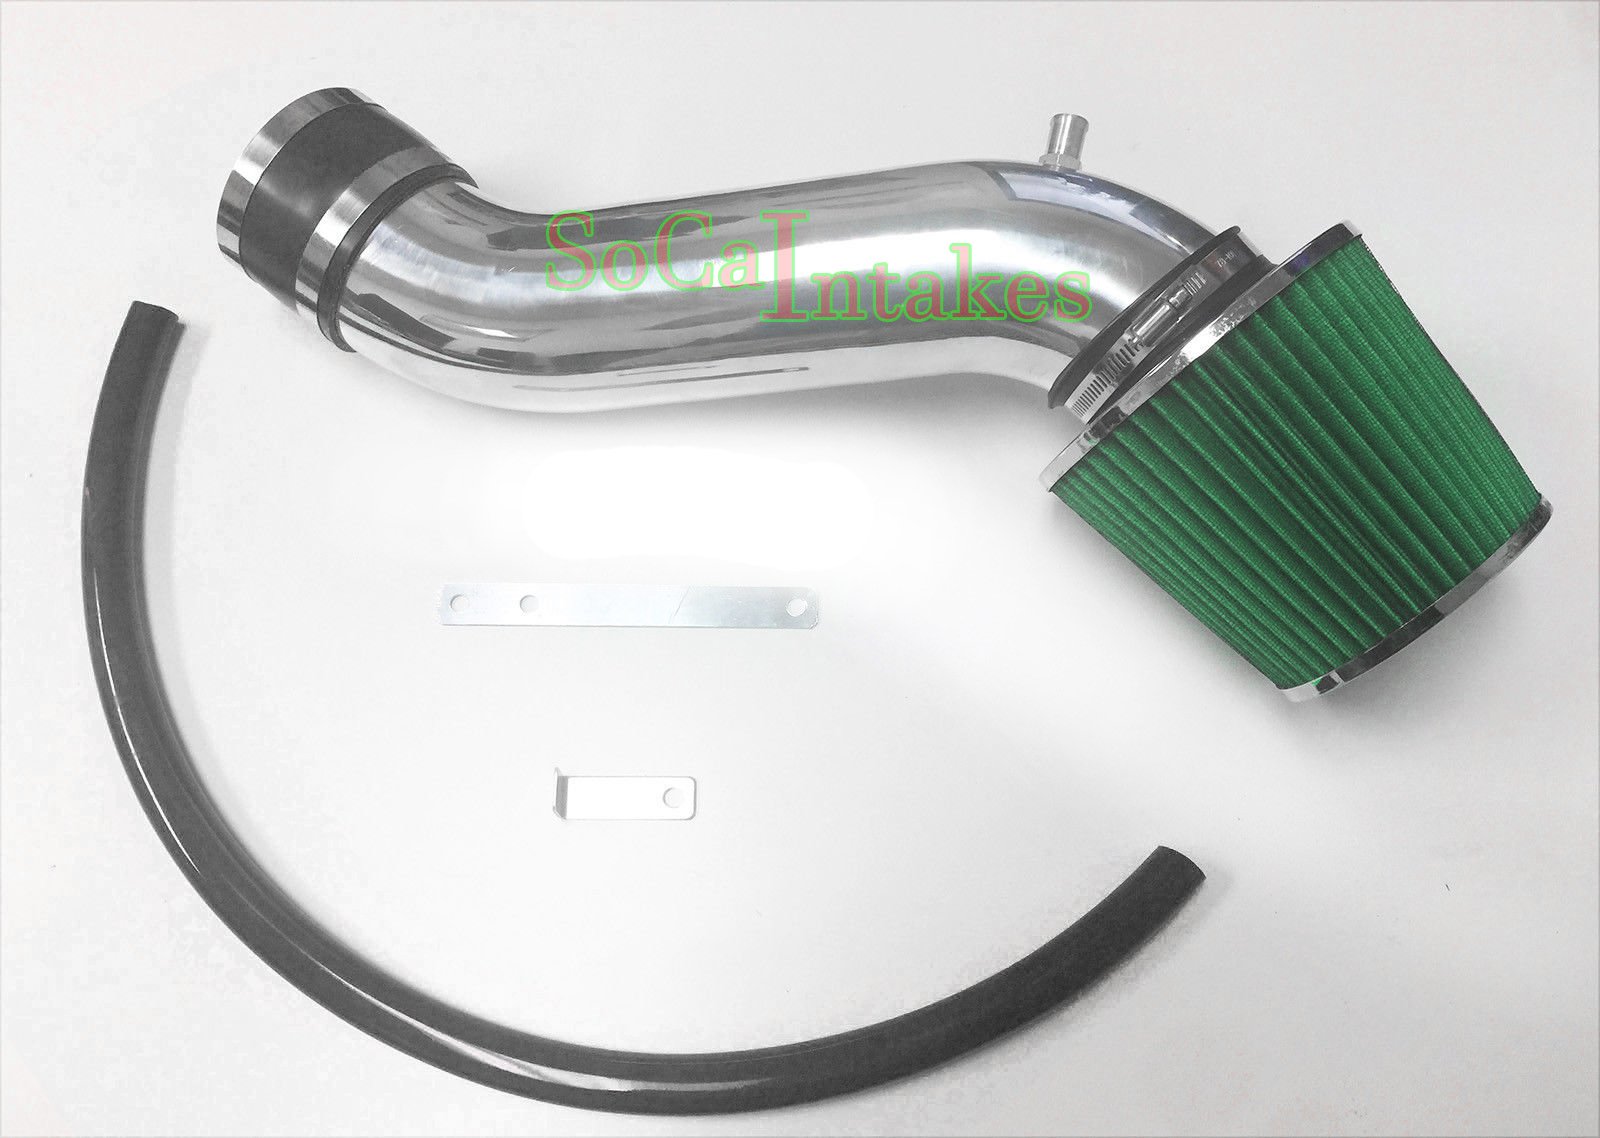 Black Green Air Intake Kit /& Filter For 2014-2015 Jeep Cherokee 3.2L V6